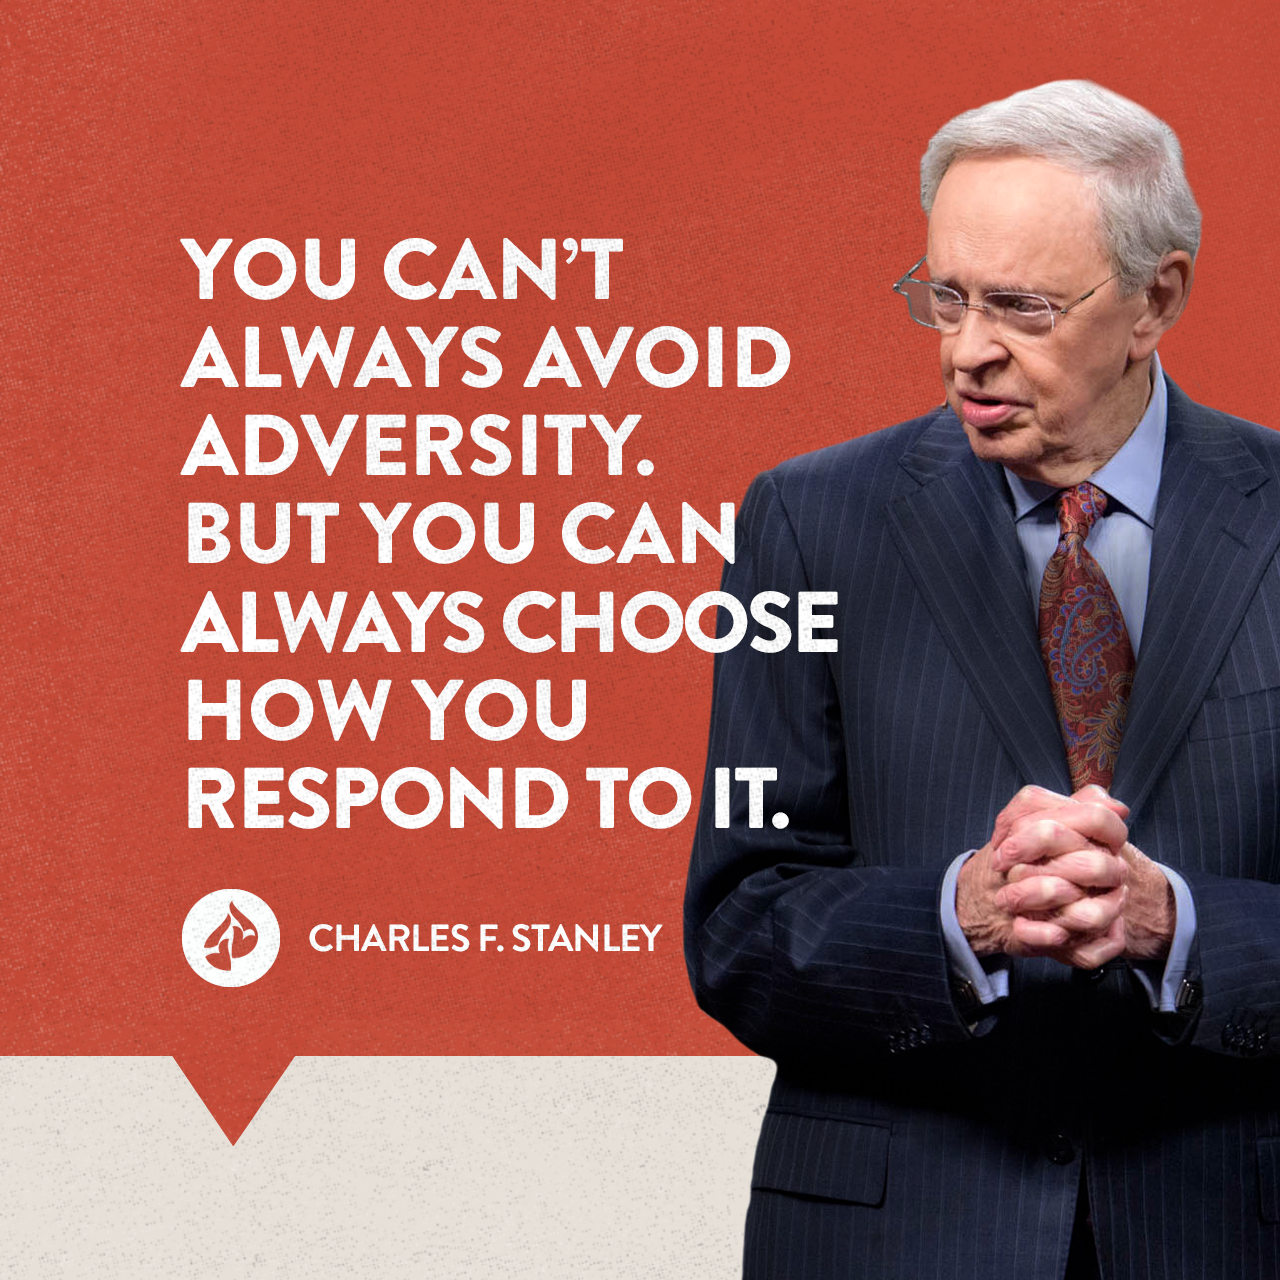 You Can T Always Avoid Adversity But You Can Always Choose How You Respond To It Dr Charles St Charles Stanley Quotes Dr Charles Stanley Charles Stanley